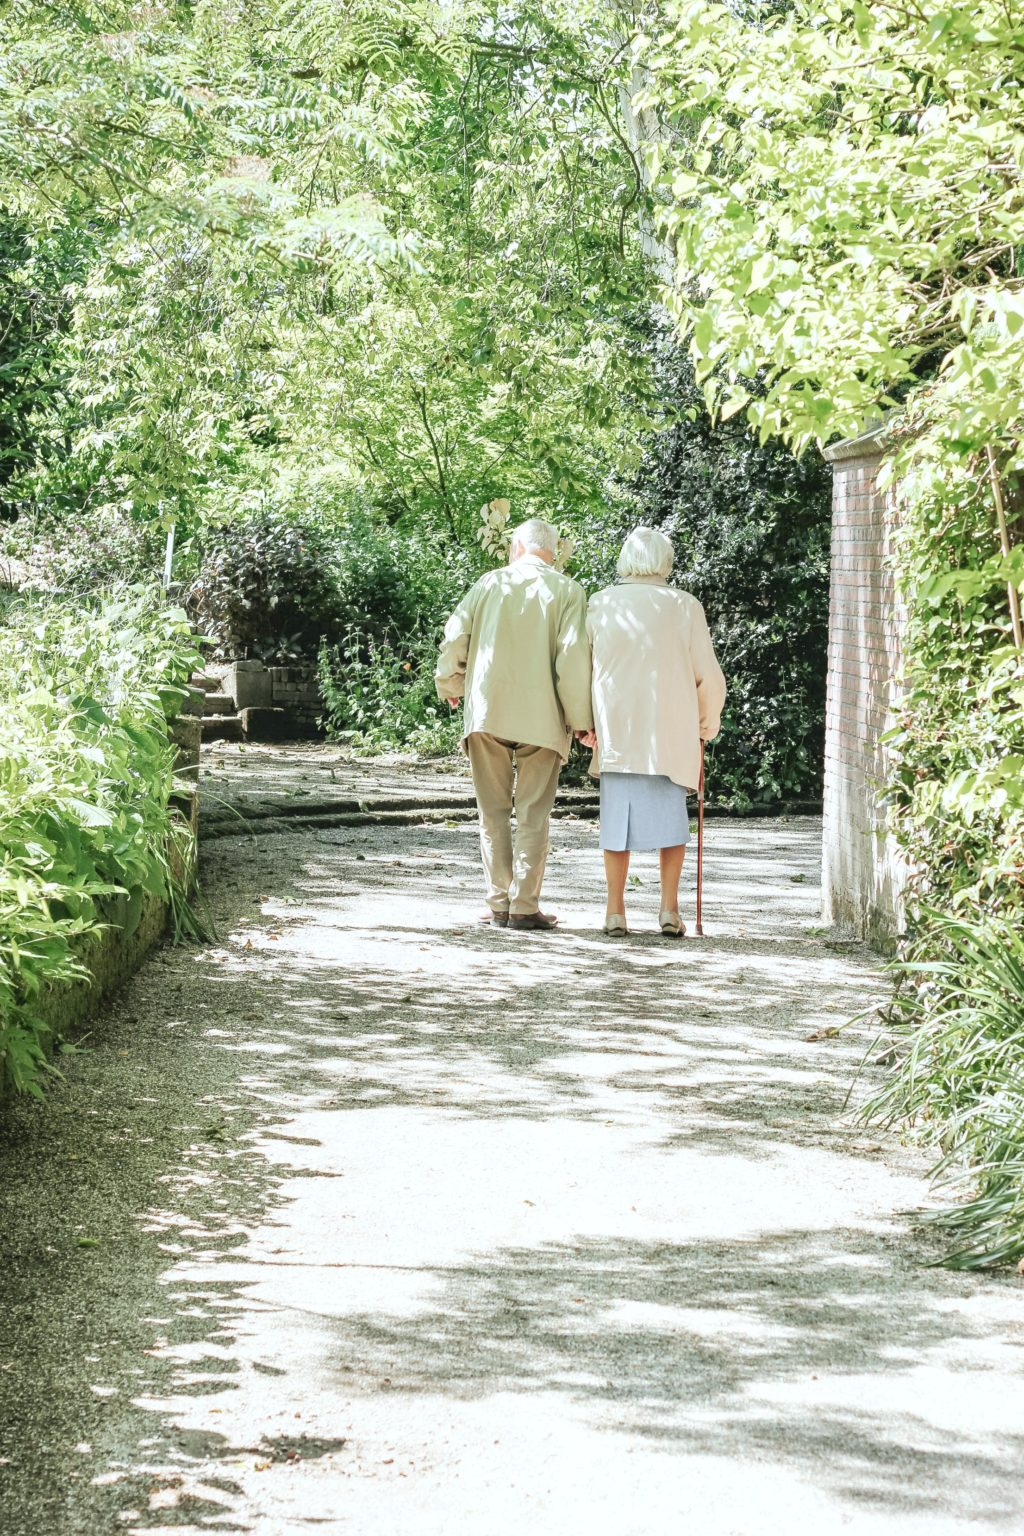 Two elderly people walk along a forested path